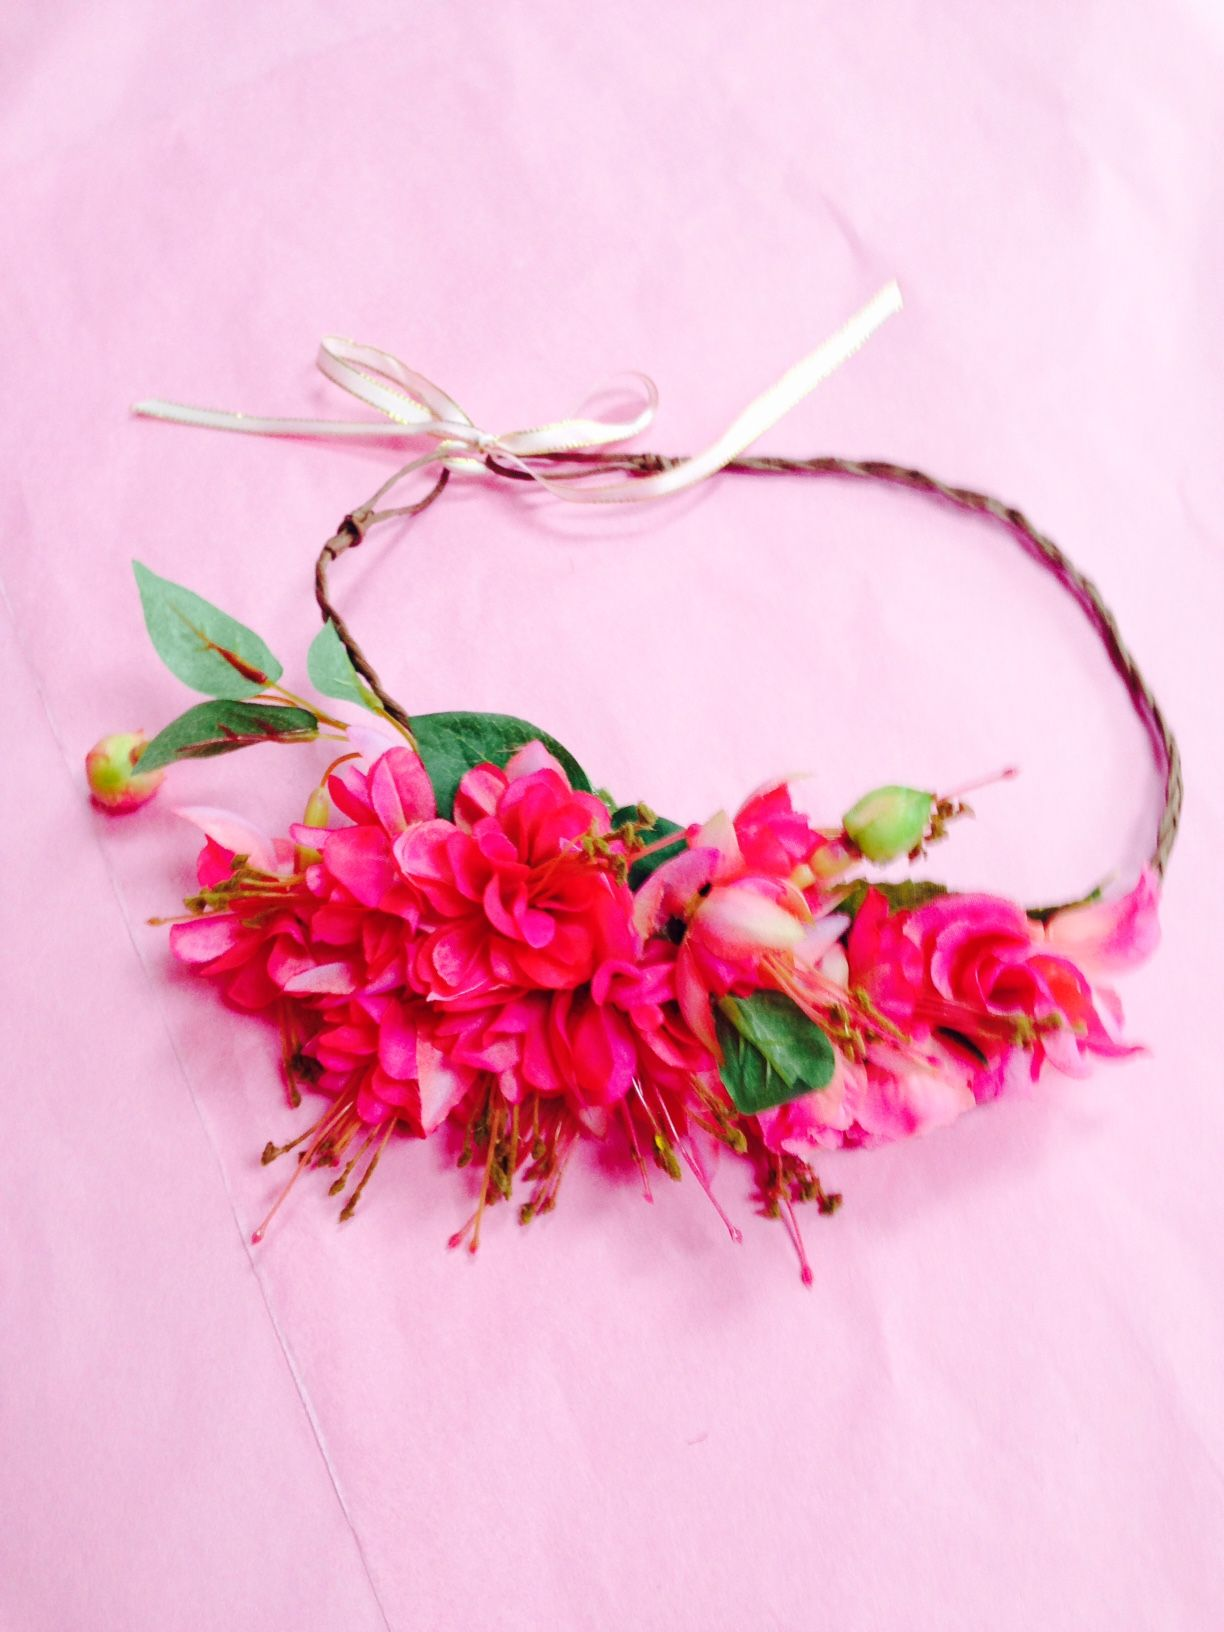 Pink fuschia flower crown wreath 2475 beautiful posy of pink pink fuschia flower crown wreath 2475 beautiful posy of pink fuschia on rustic gyspy wire with thin pale pink and gold ribbon handmade by rosadior a izmirmasajfo